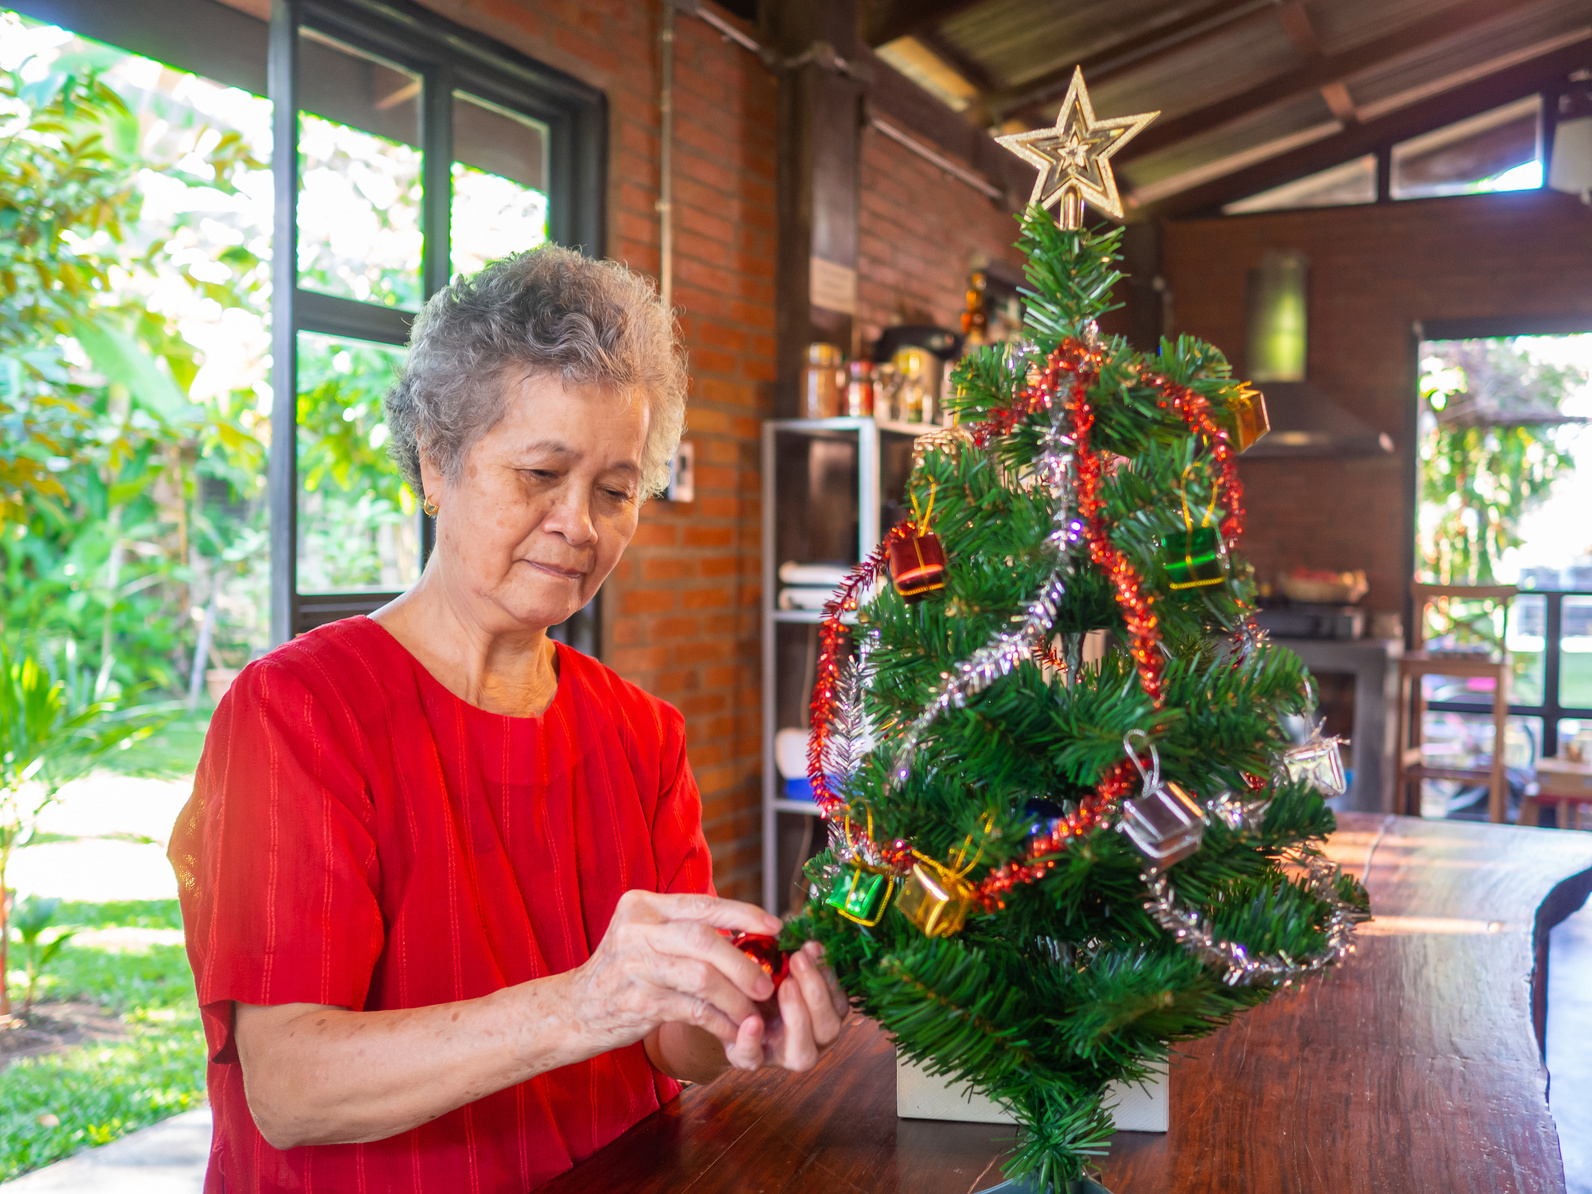 Five Tips for Spending the Holidays With a Parent with Alzheimer's